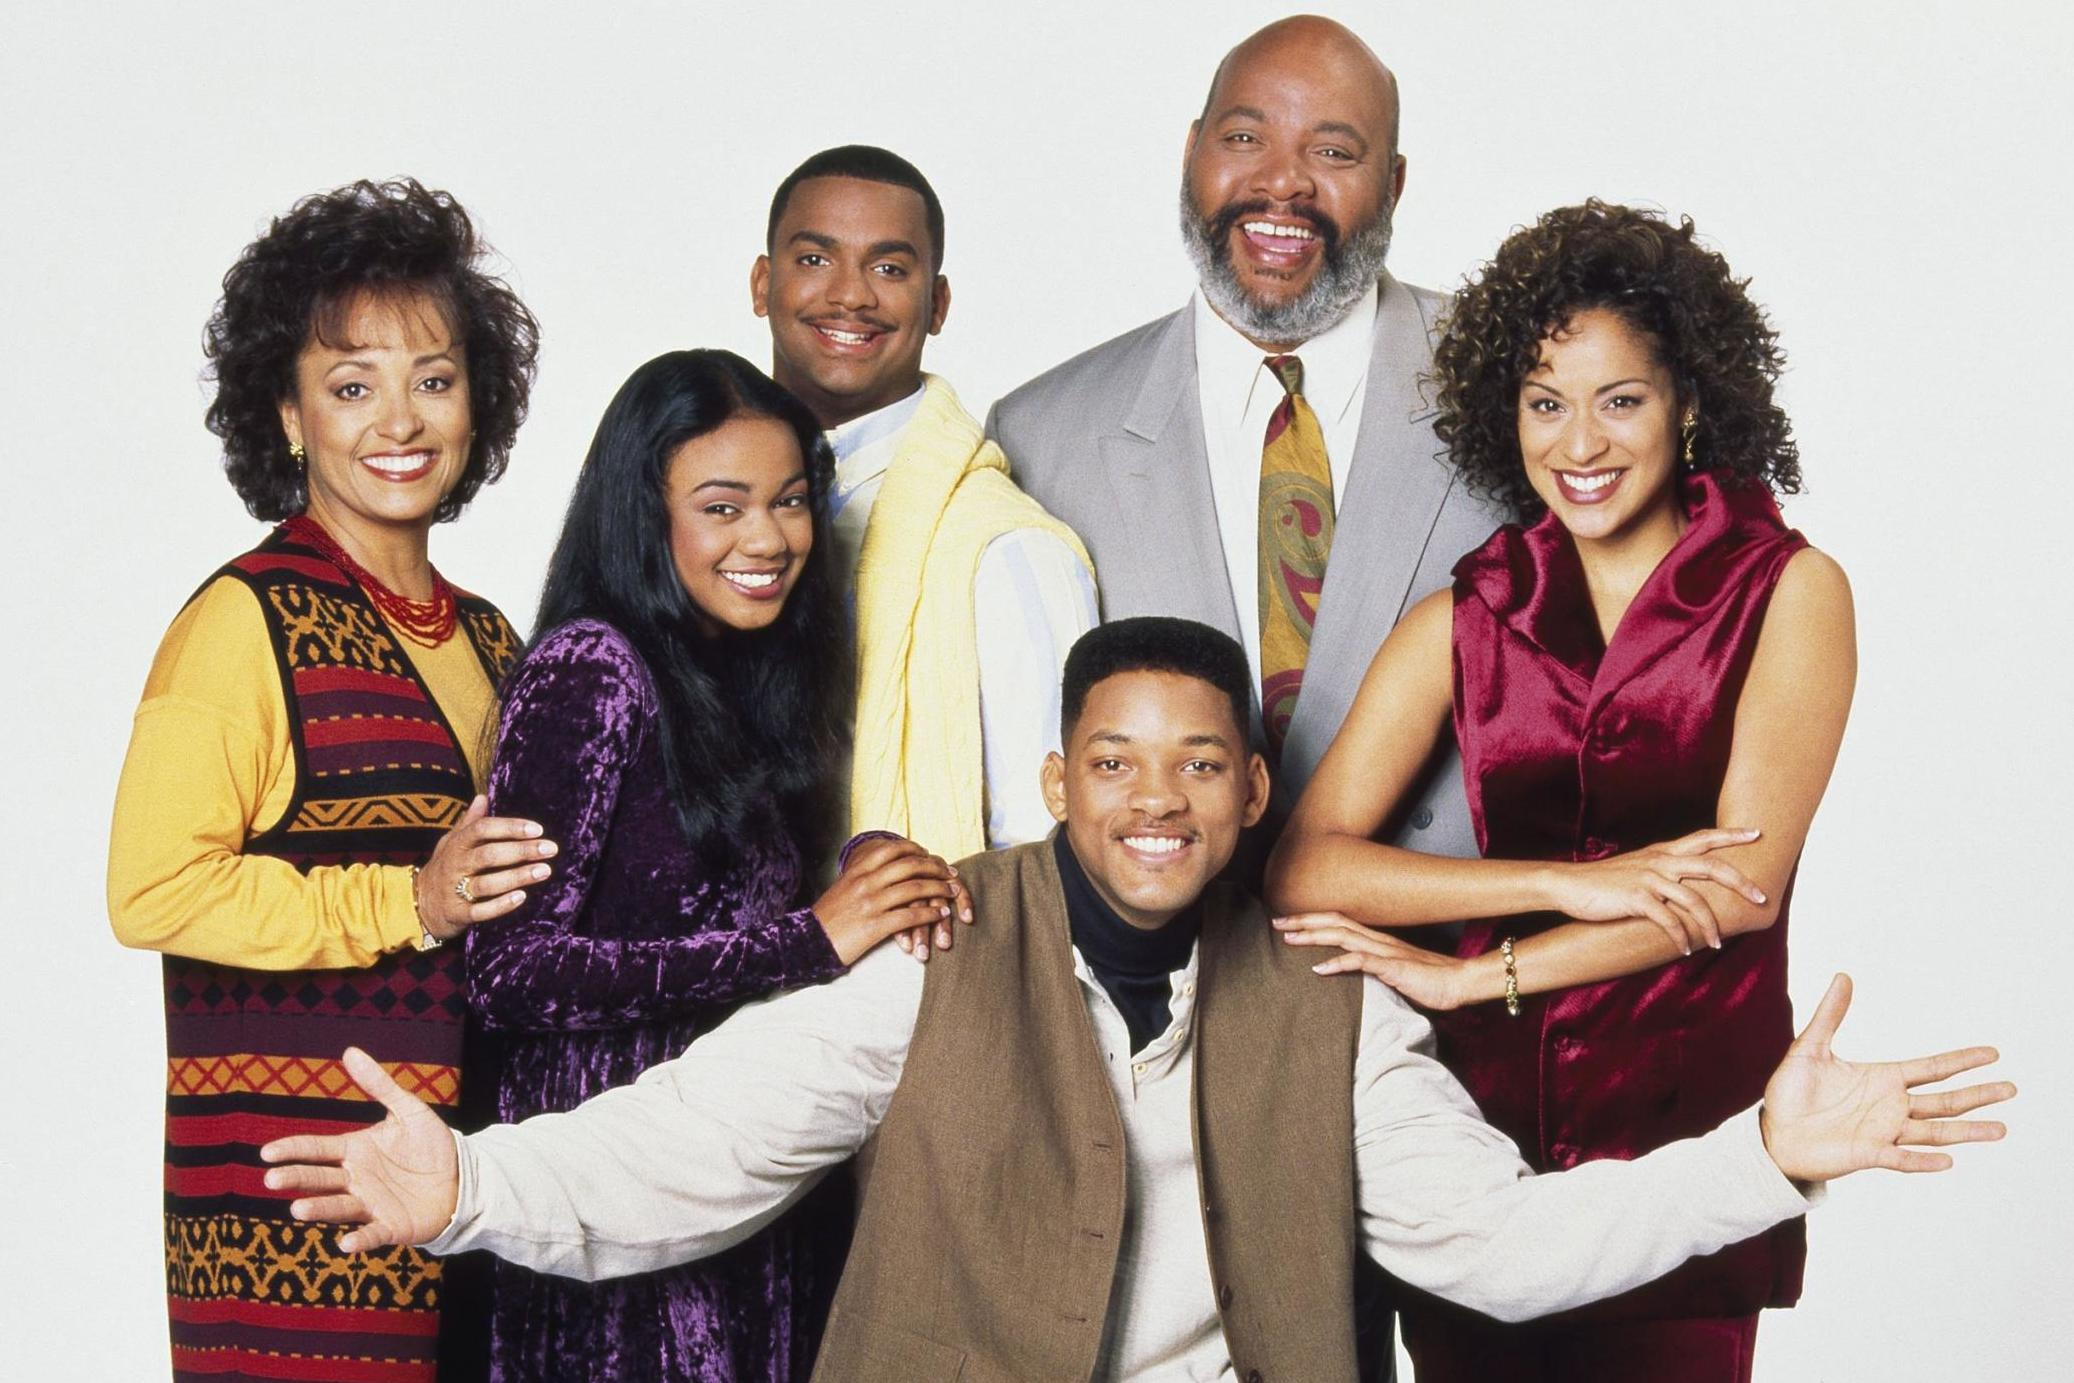 The Fresh Prince of Bel-Air 30th anniversary: Where are the cast now? | The  Independent